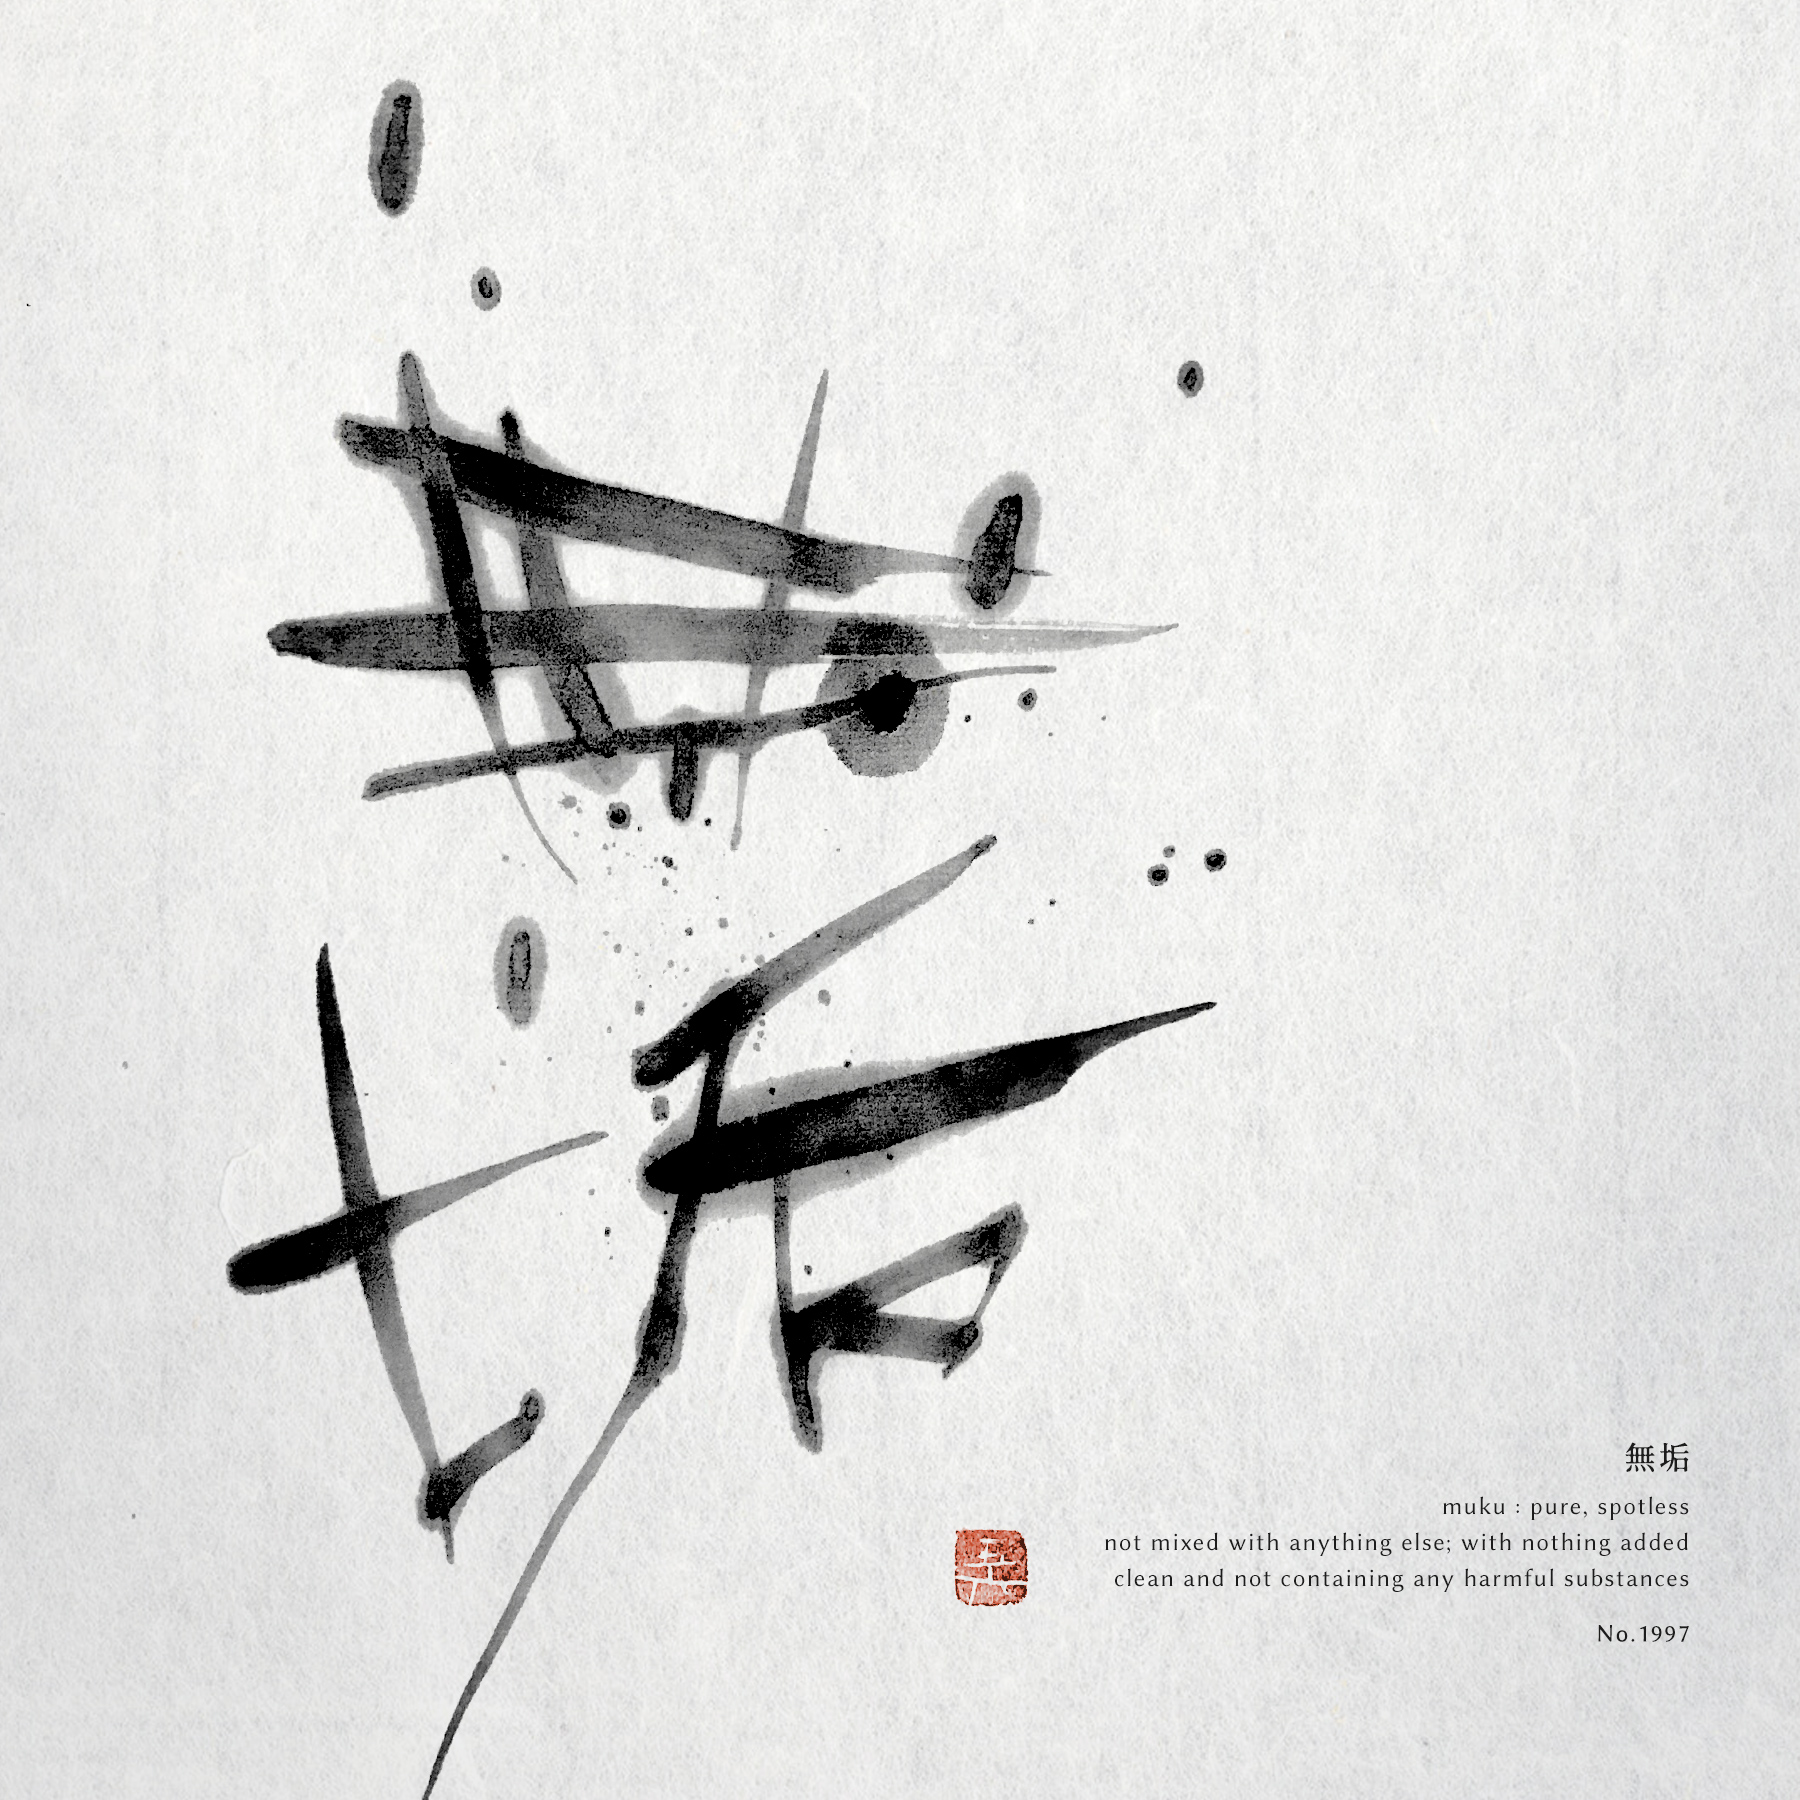 無垢 | pure, spotless 書道作品 japaneseart japanese calligraphy 書家 田川悟郎 Goroh Tagawa